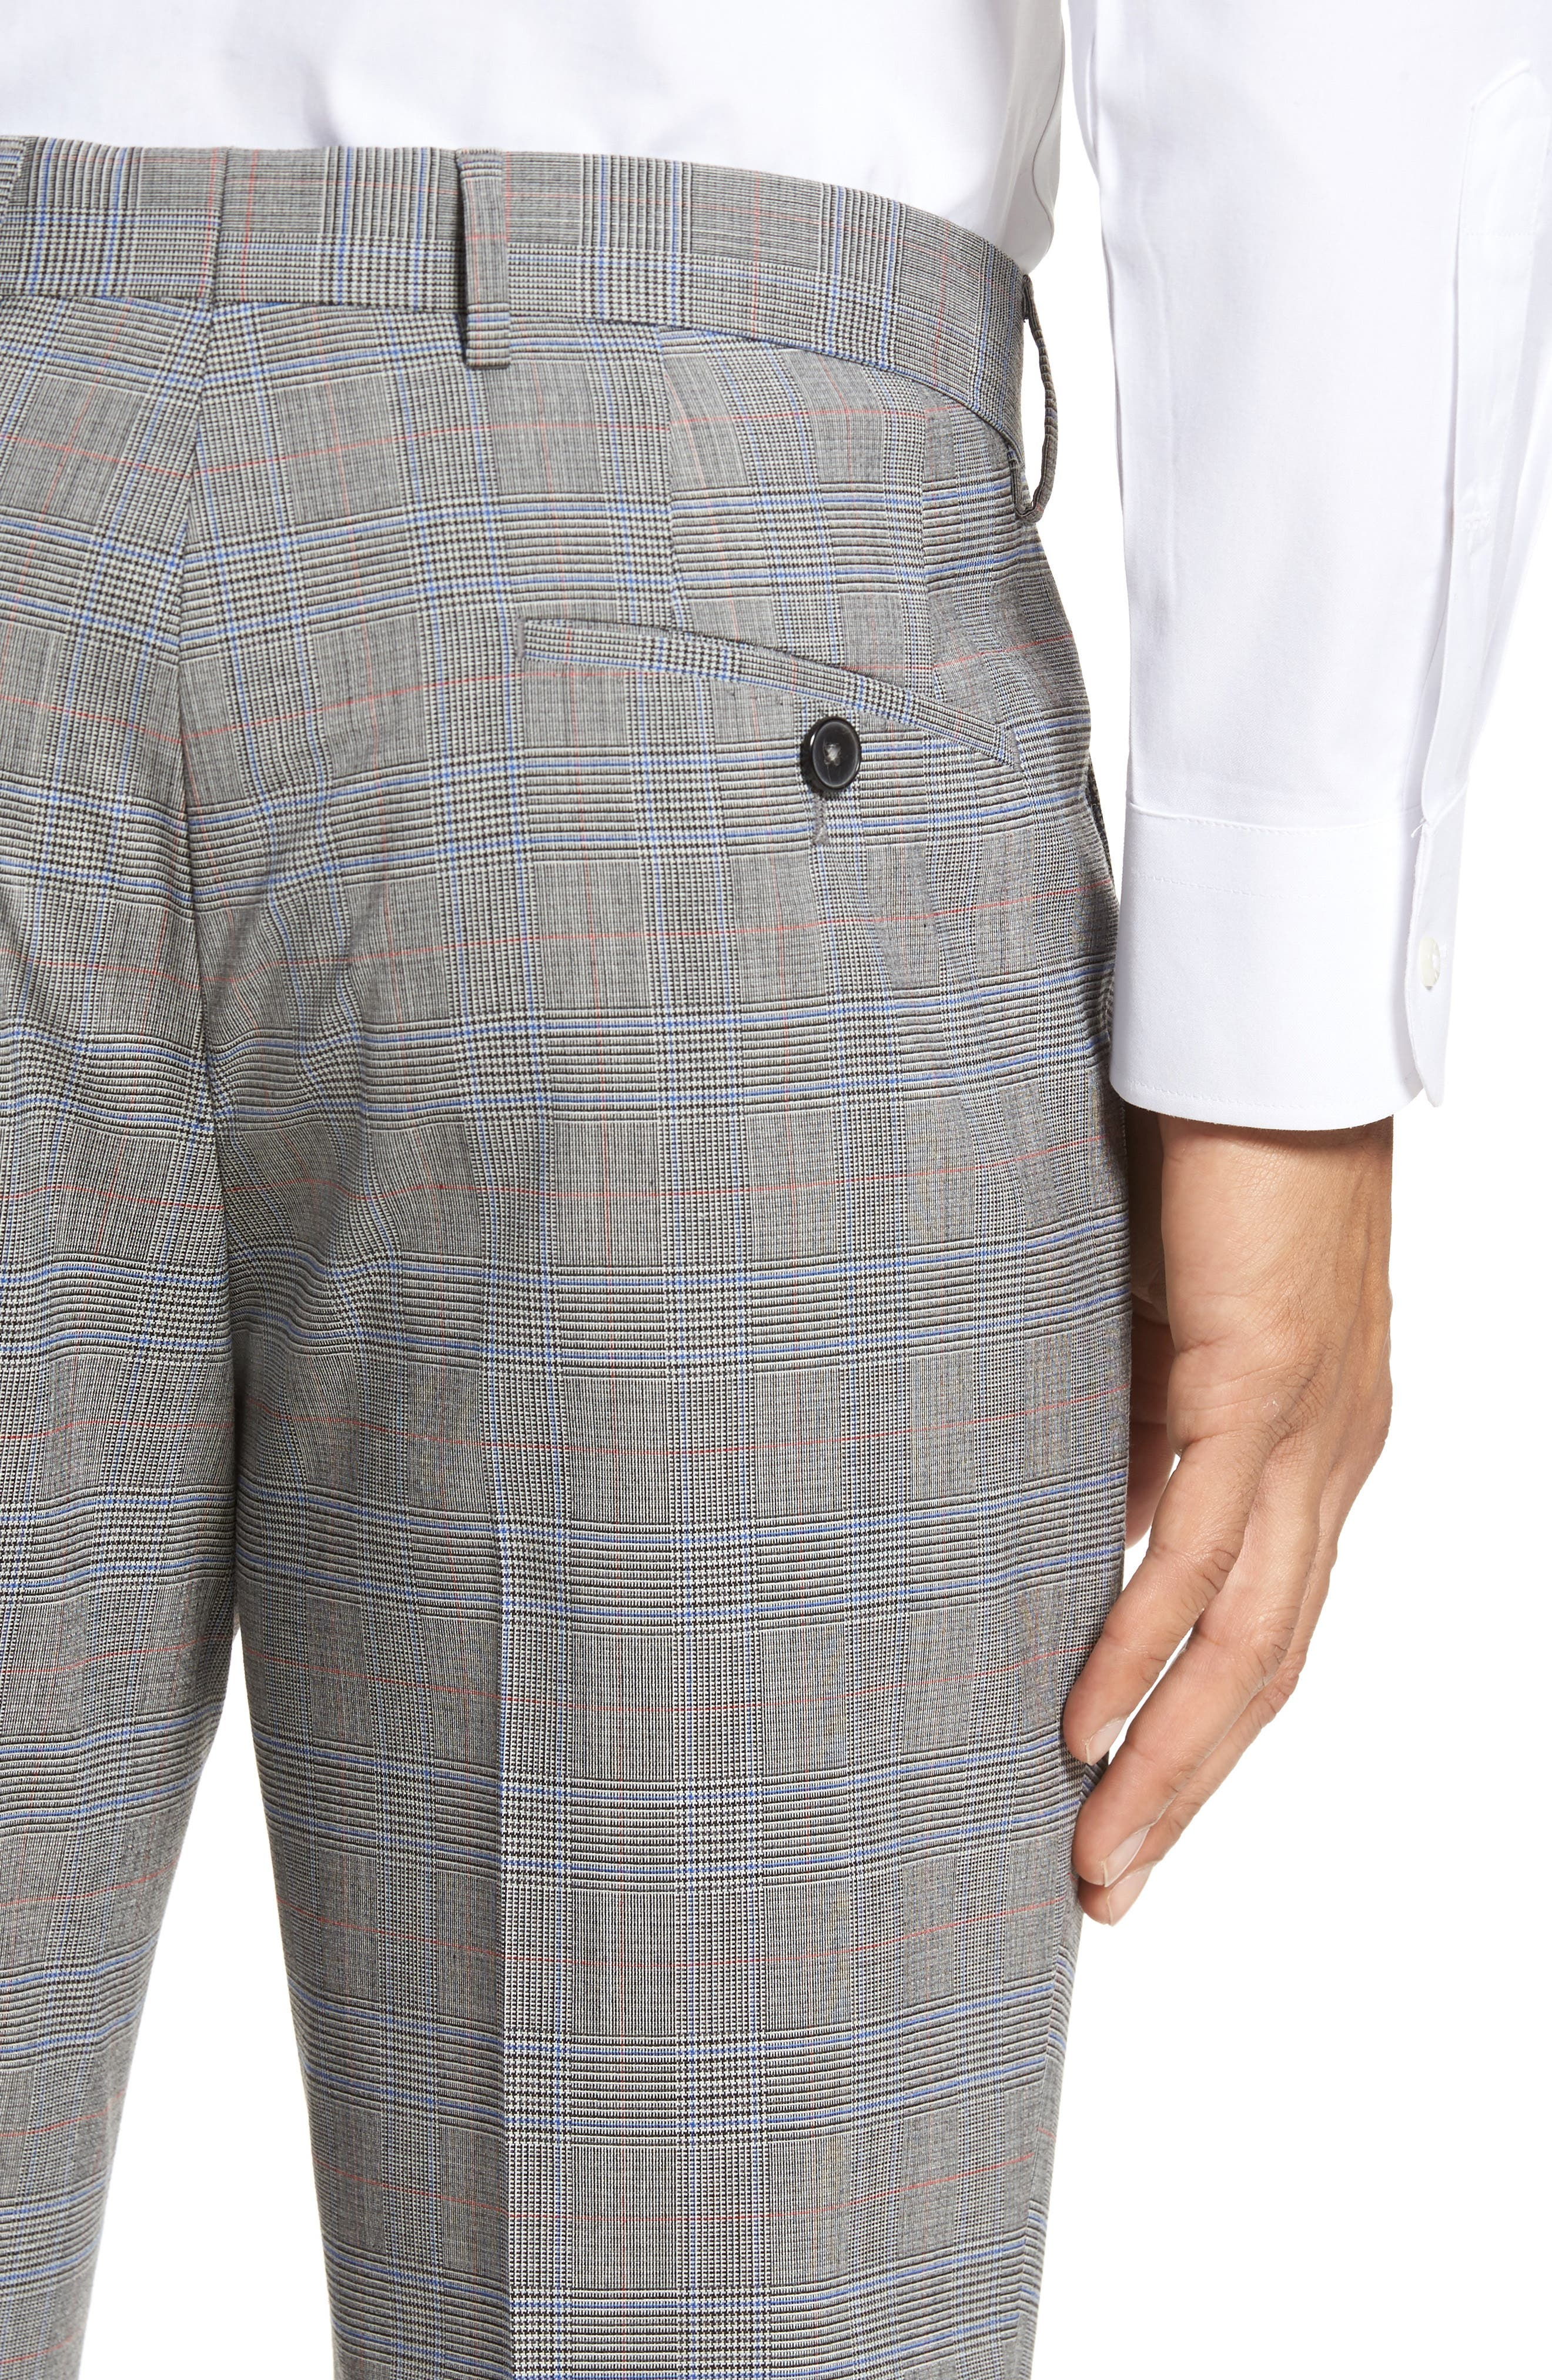 Benso Flat Front Plaid Wool Blend Trousers,                             Alternate thumbnail 5, color,                             061